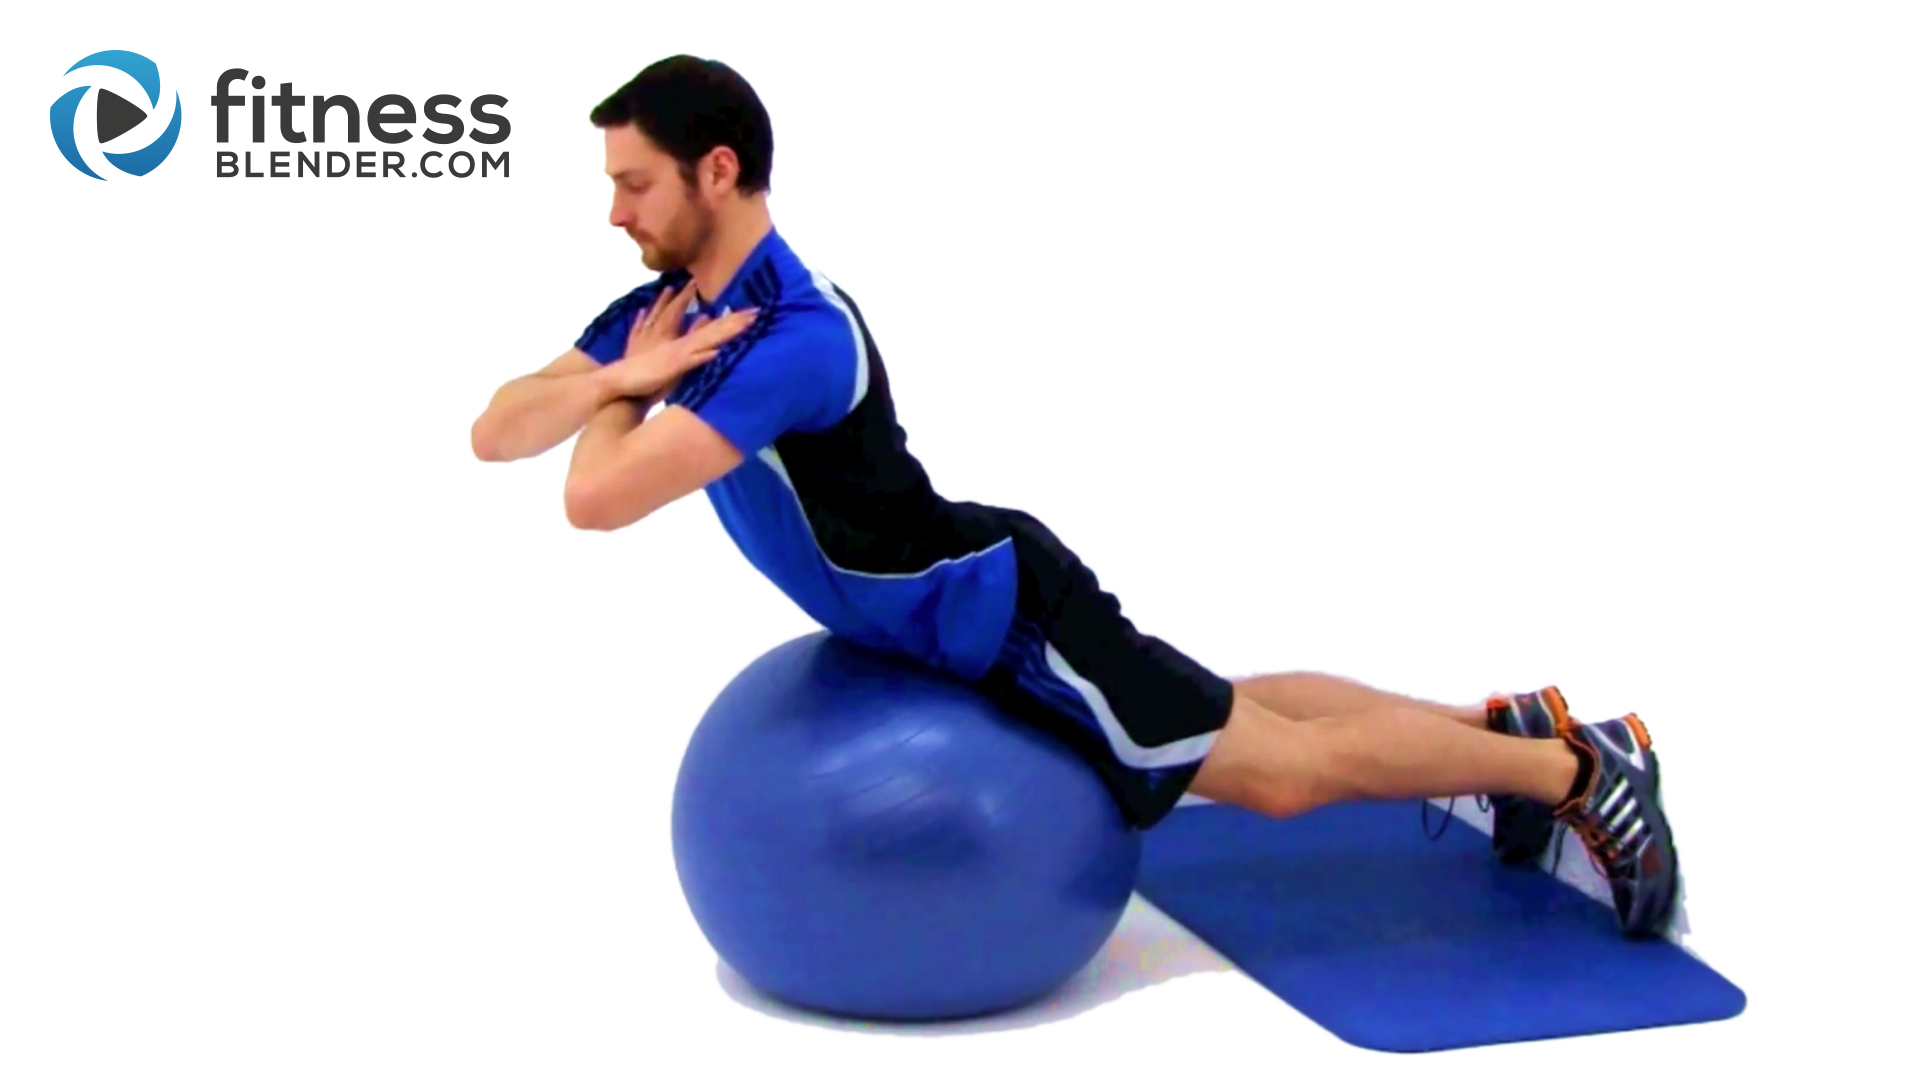 Free fitness video programs without